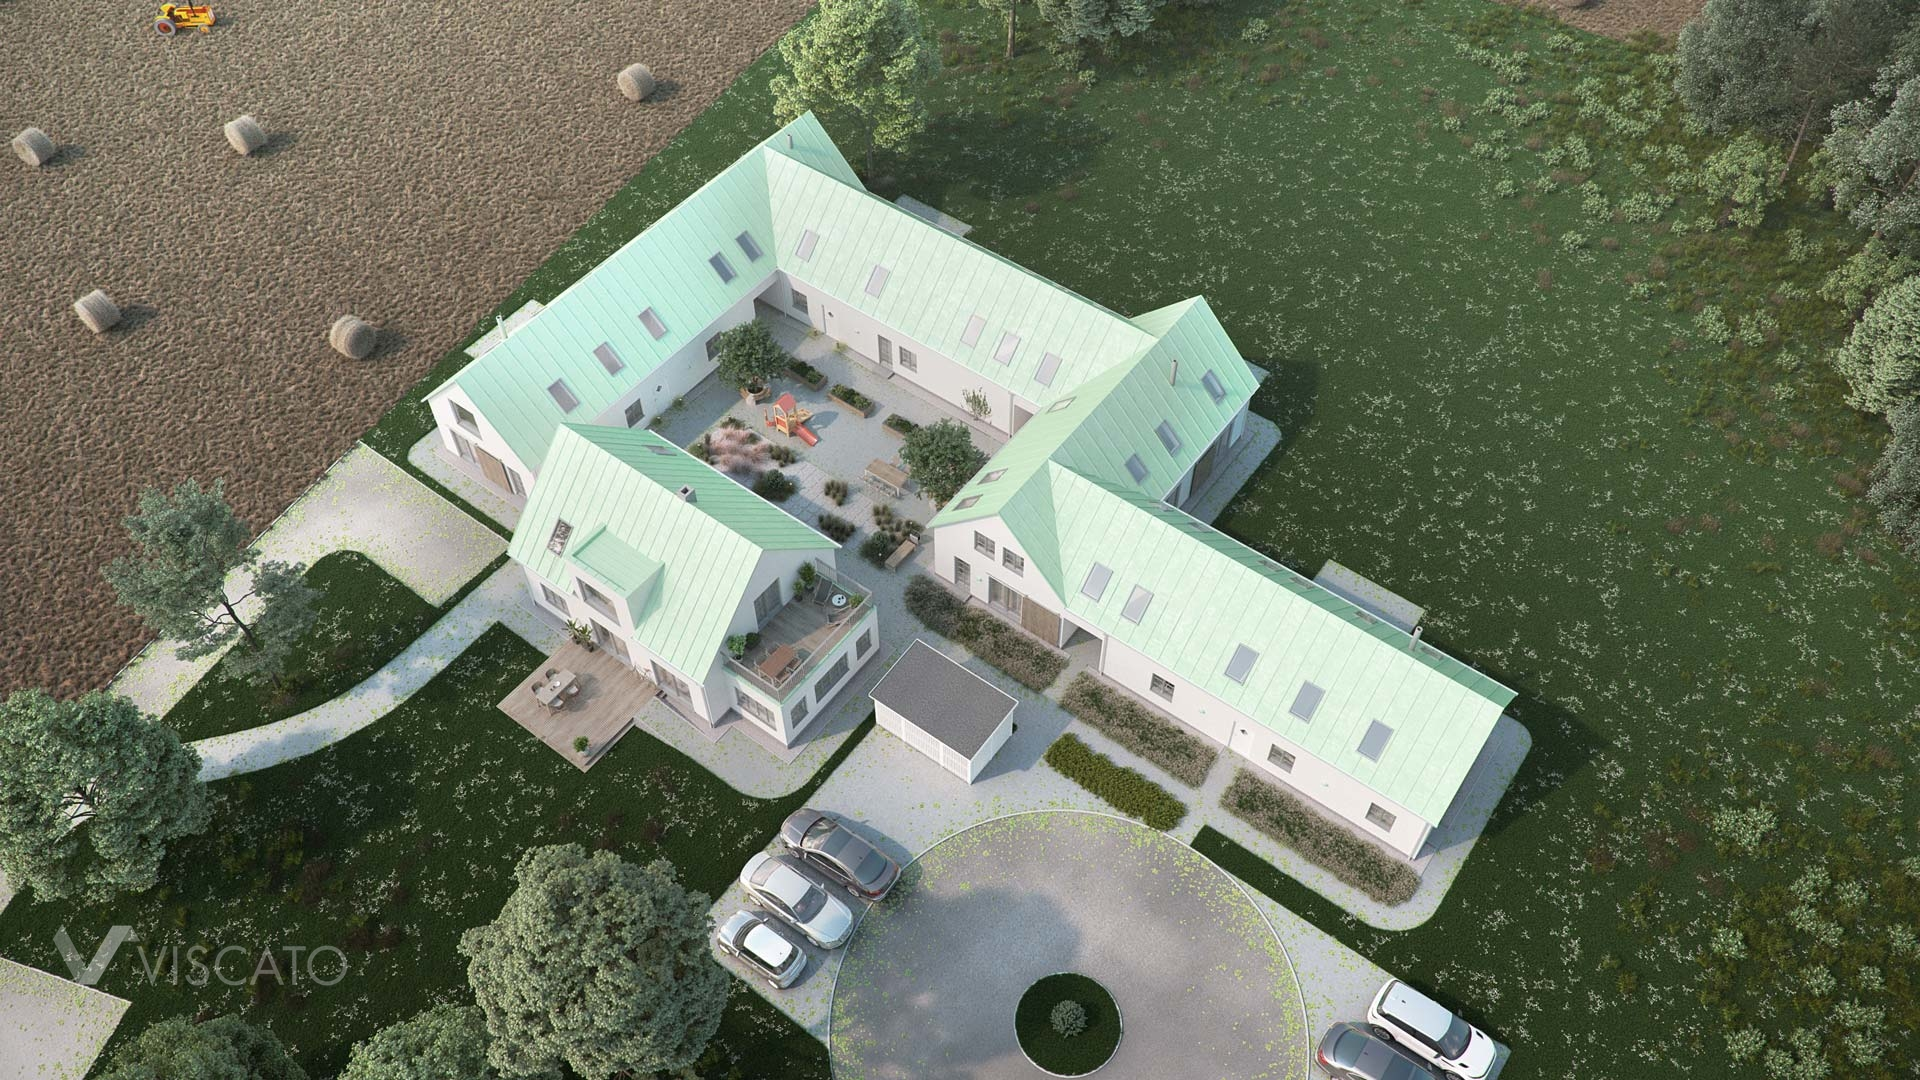 Viscato's 3D architectural visualization of houses in Sweden- bird eye view